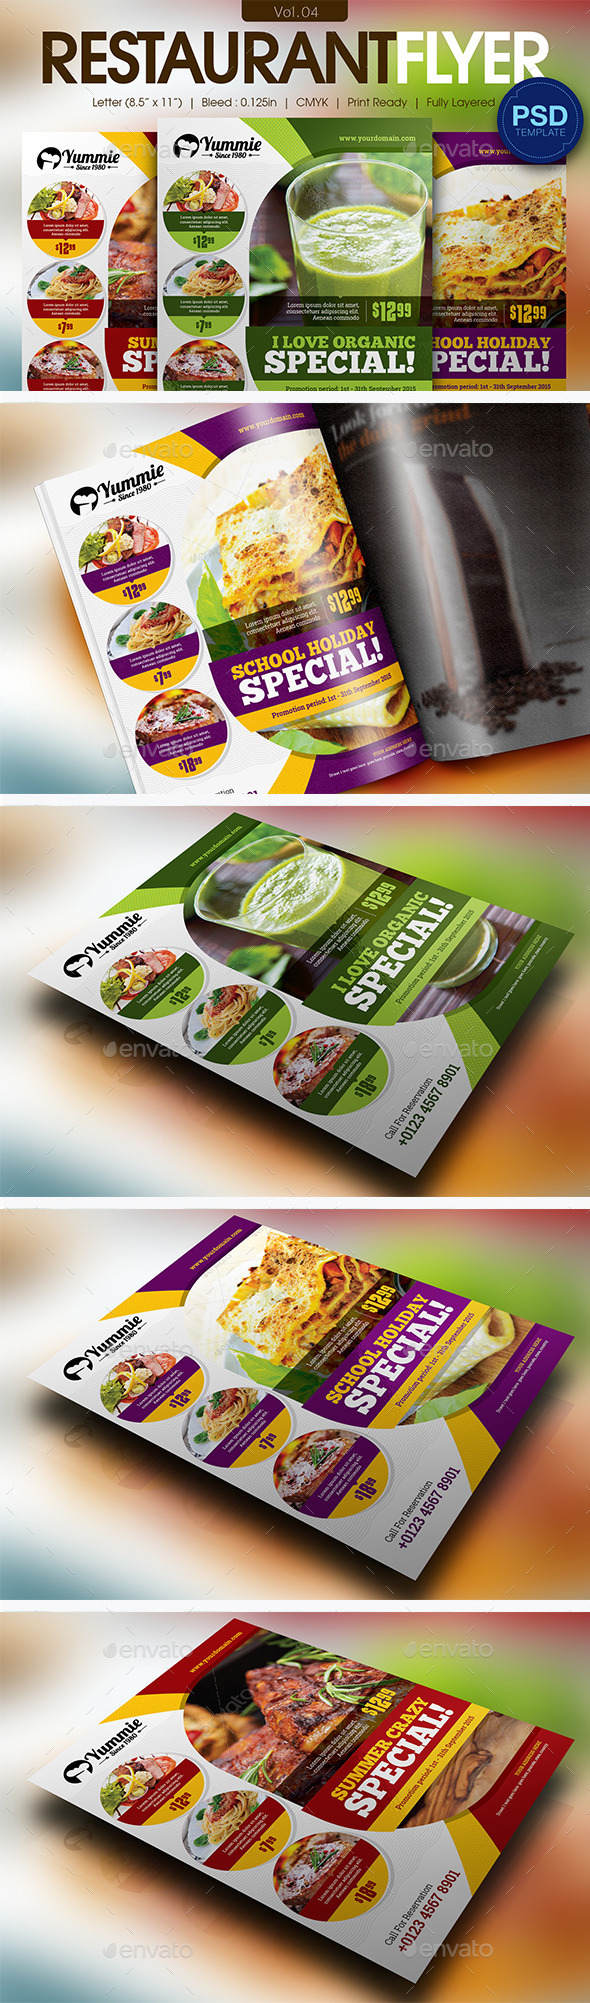 GraphicRiver Restaurant Flyer Vol.04 11596077